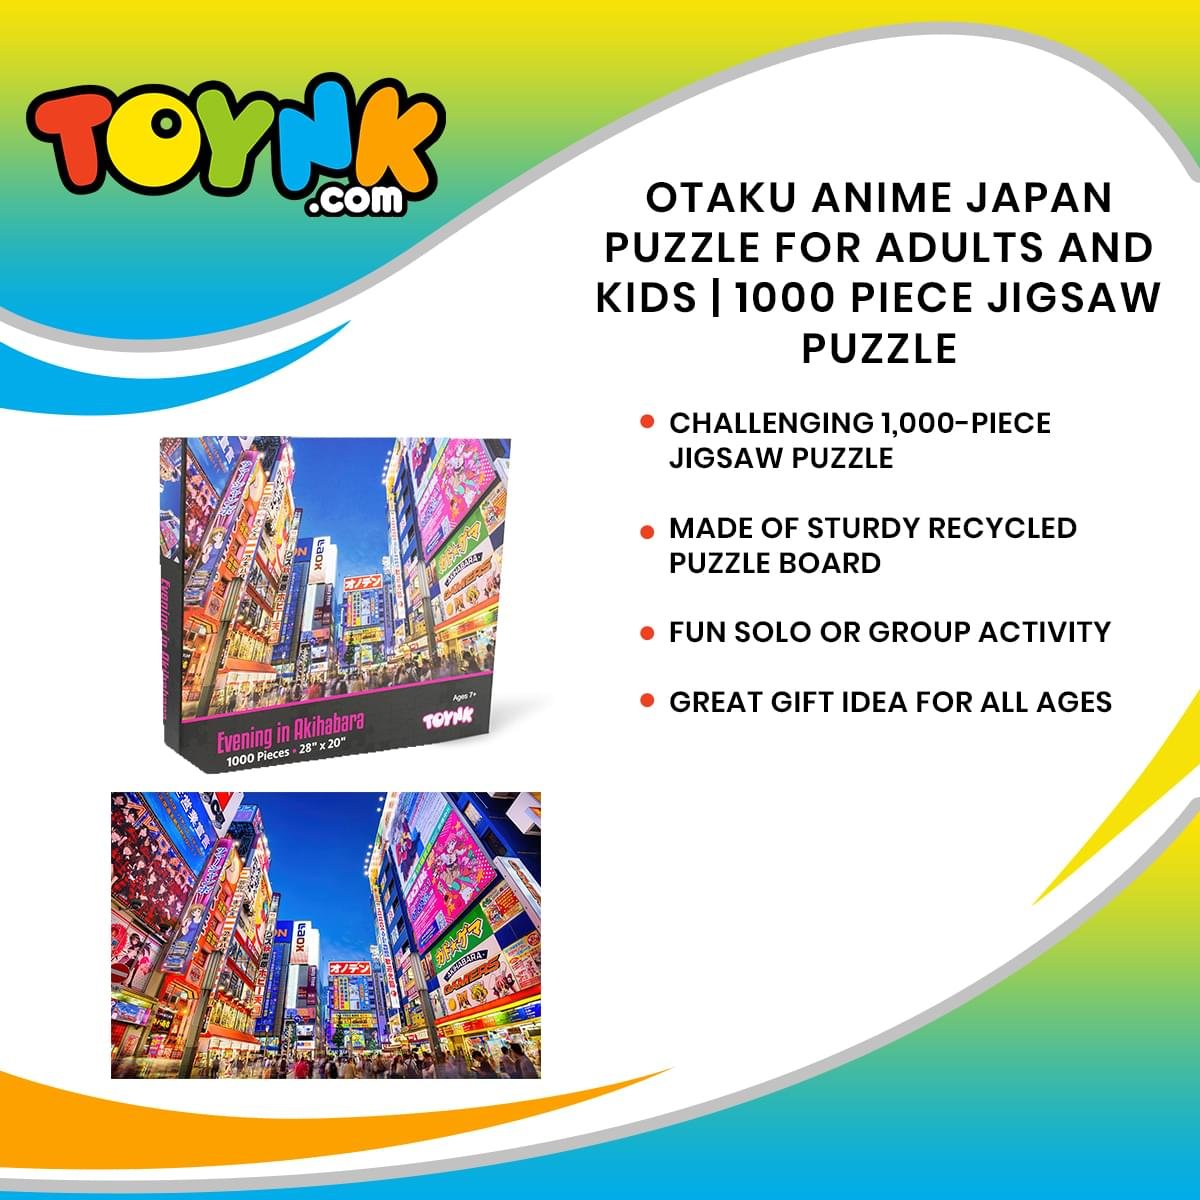 Evening in Akihabara Japan Puzzle For Adults And Kids | 1000 Piece Jigsaw Puzzle